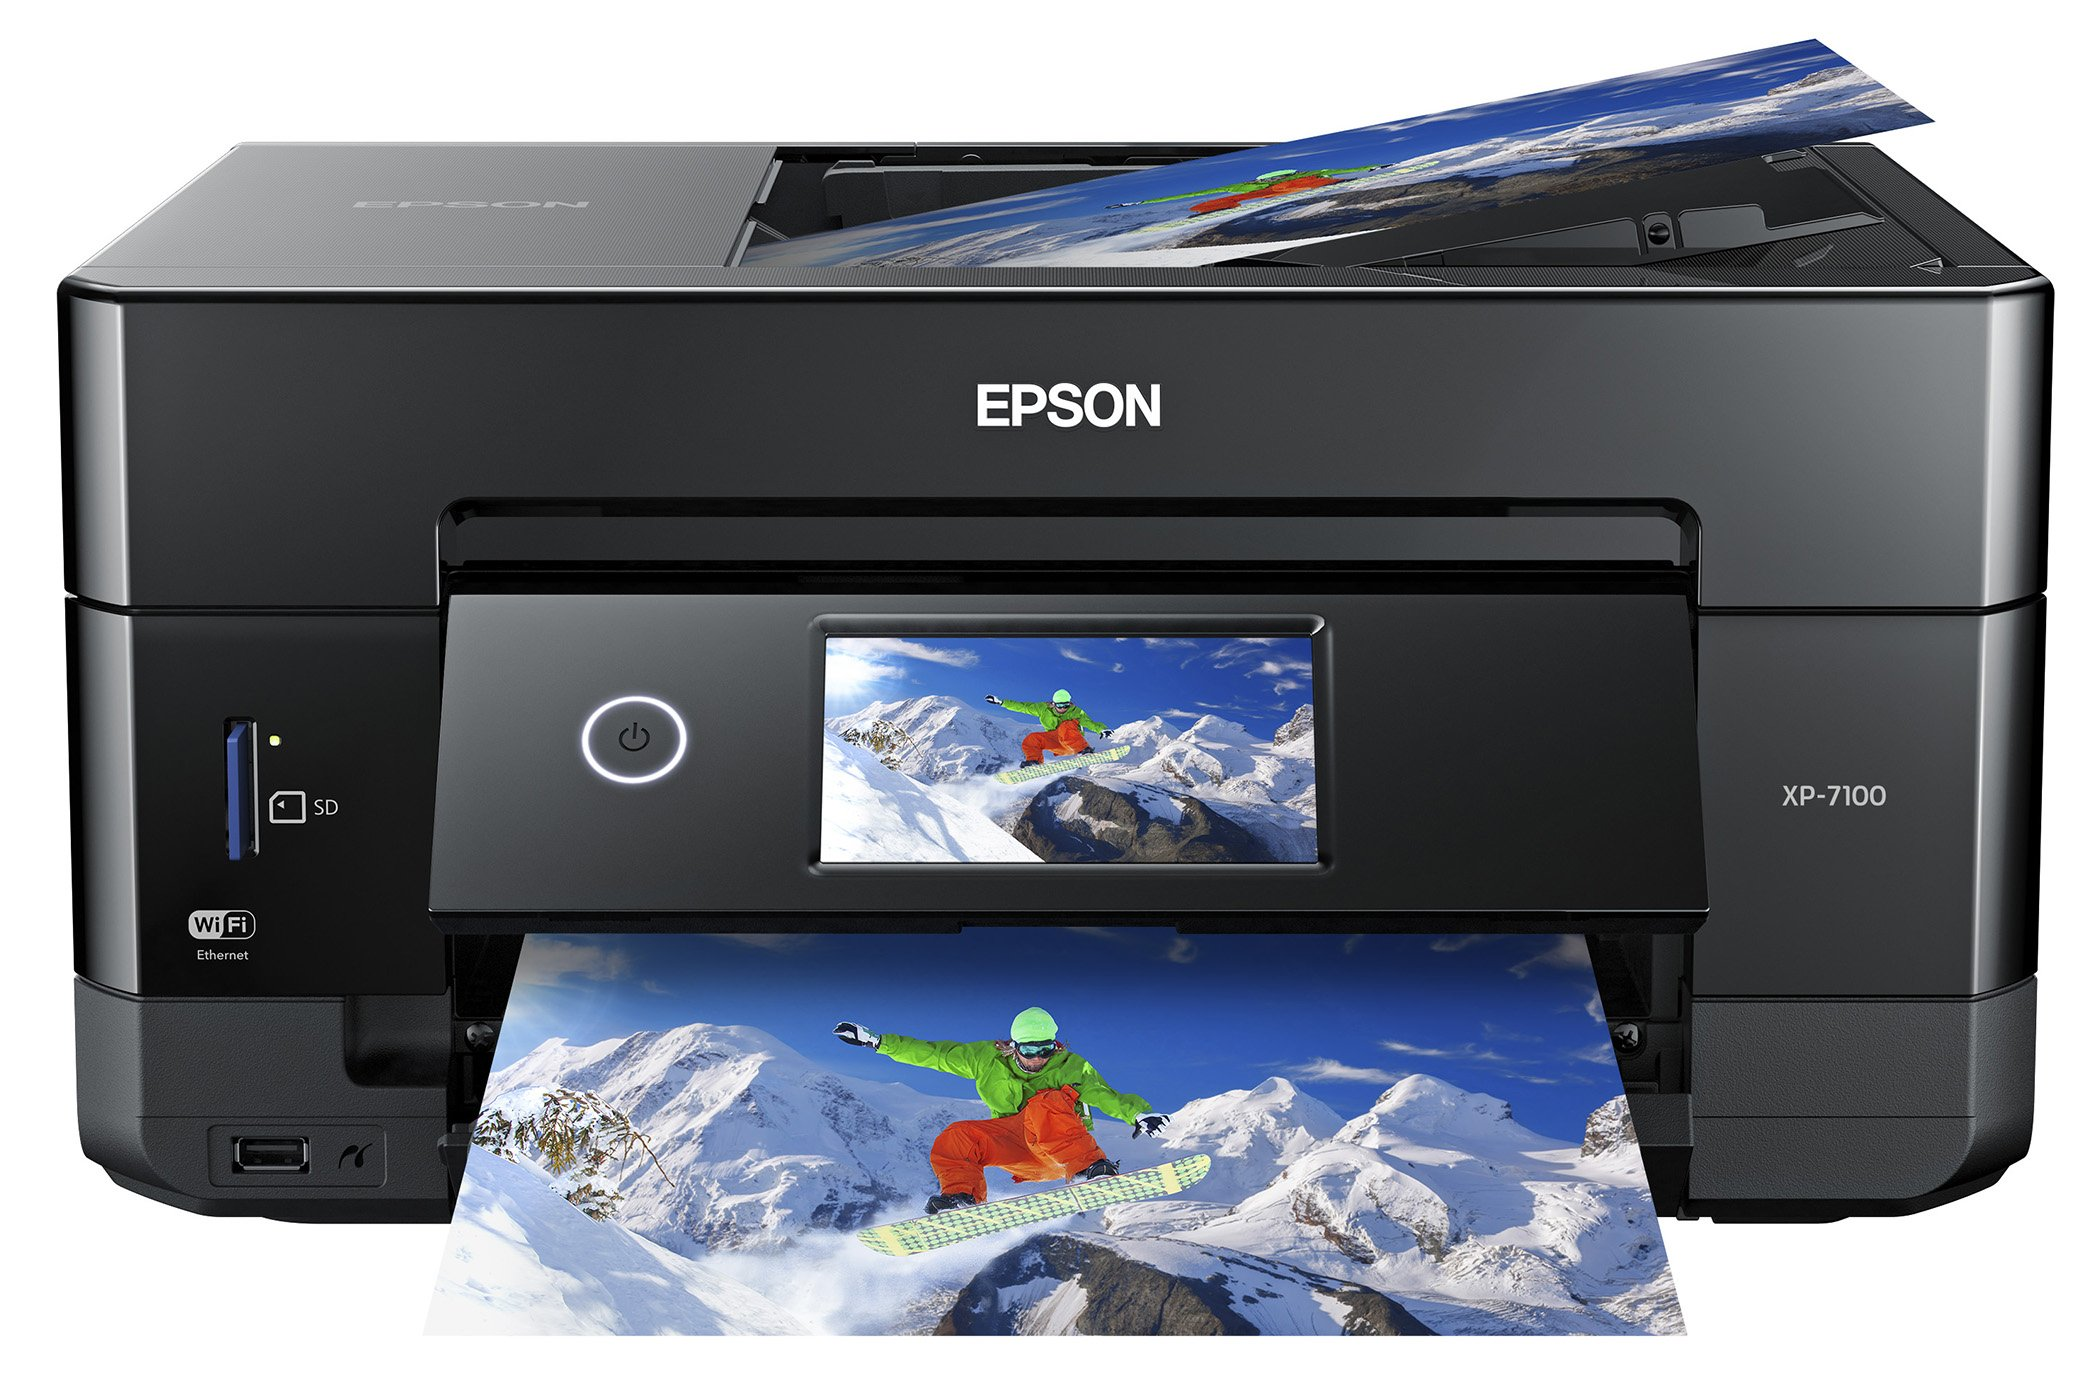 Epson Expression Premium XP-7100 Wireless Color Photo Printer with ADF, Scanner and Copier (Renewed) by Epson